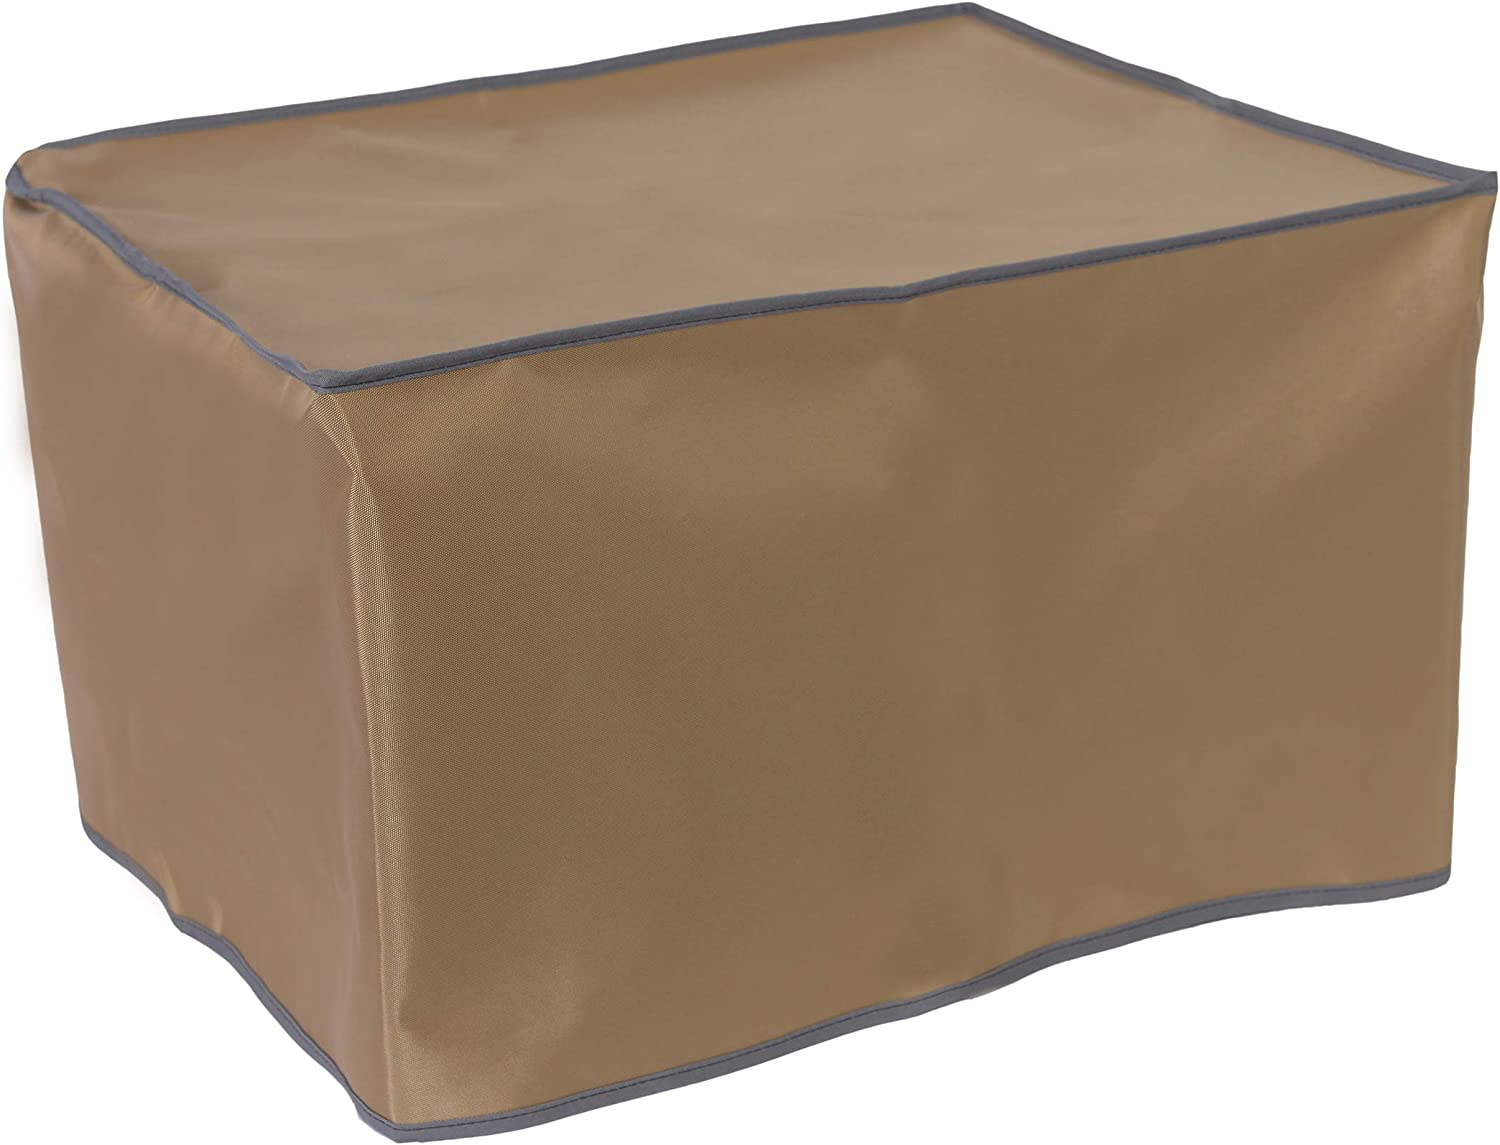 35% OFF The Perfect Dust Cover Tan for P Nylon Canon ImagePROGRAF Soldering